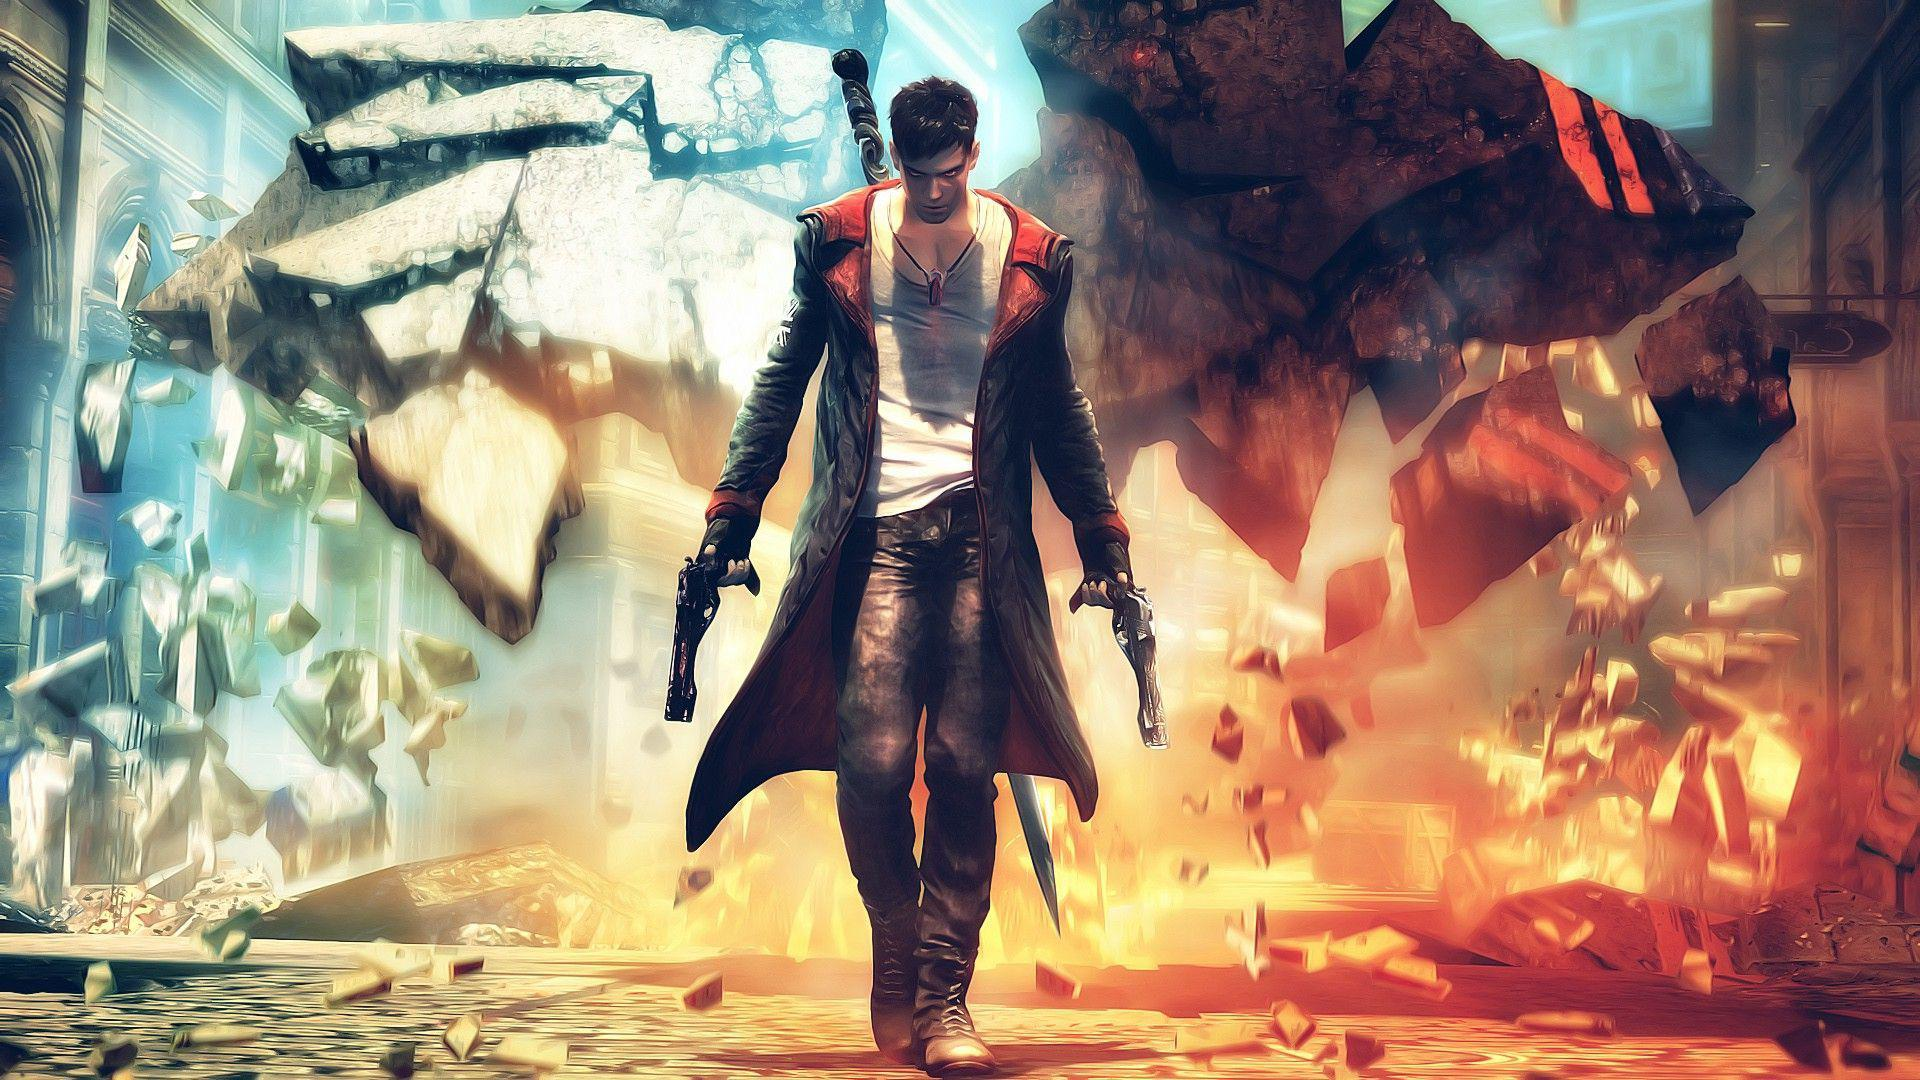 dante dmc devil may cry 1080P wallpaper